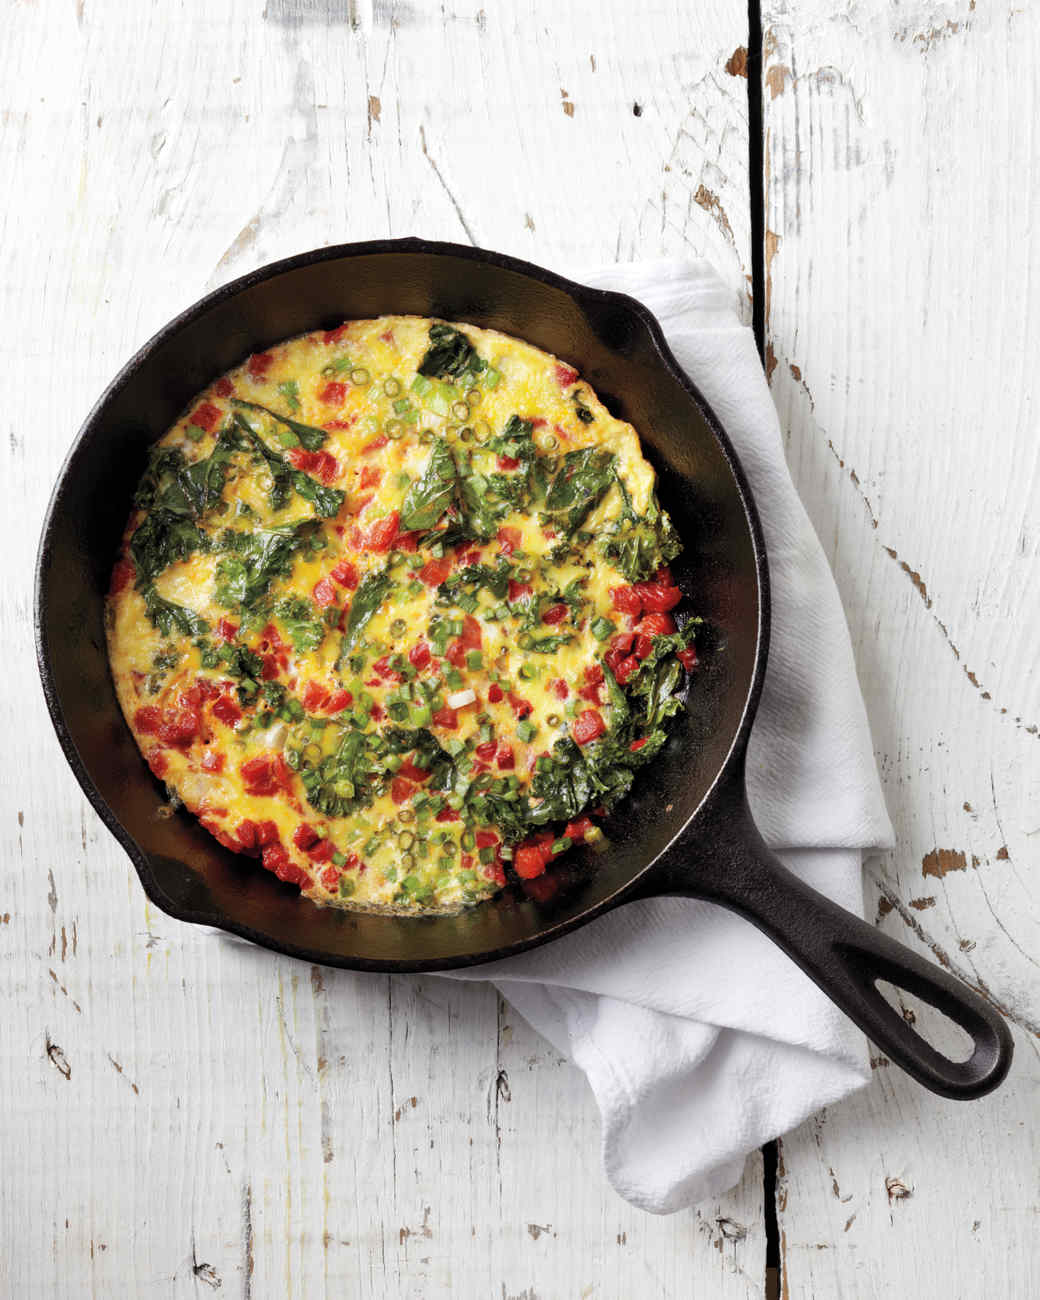 Roasted Red Pepper and Kale Frittata Recipe | Martha Stewart